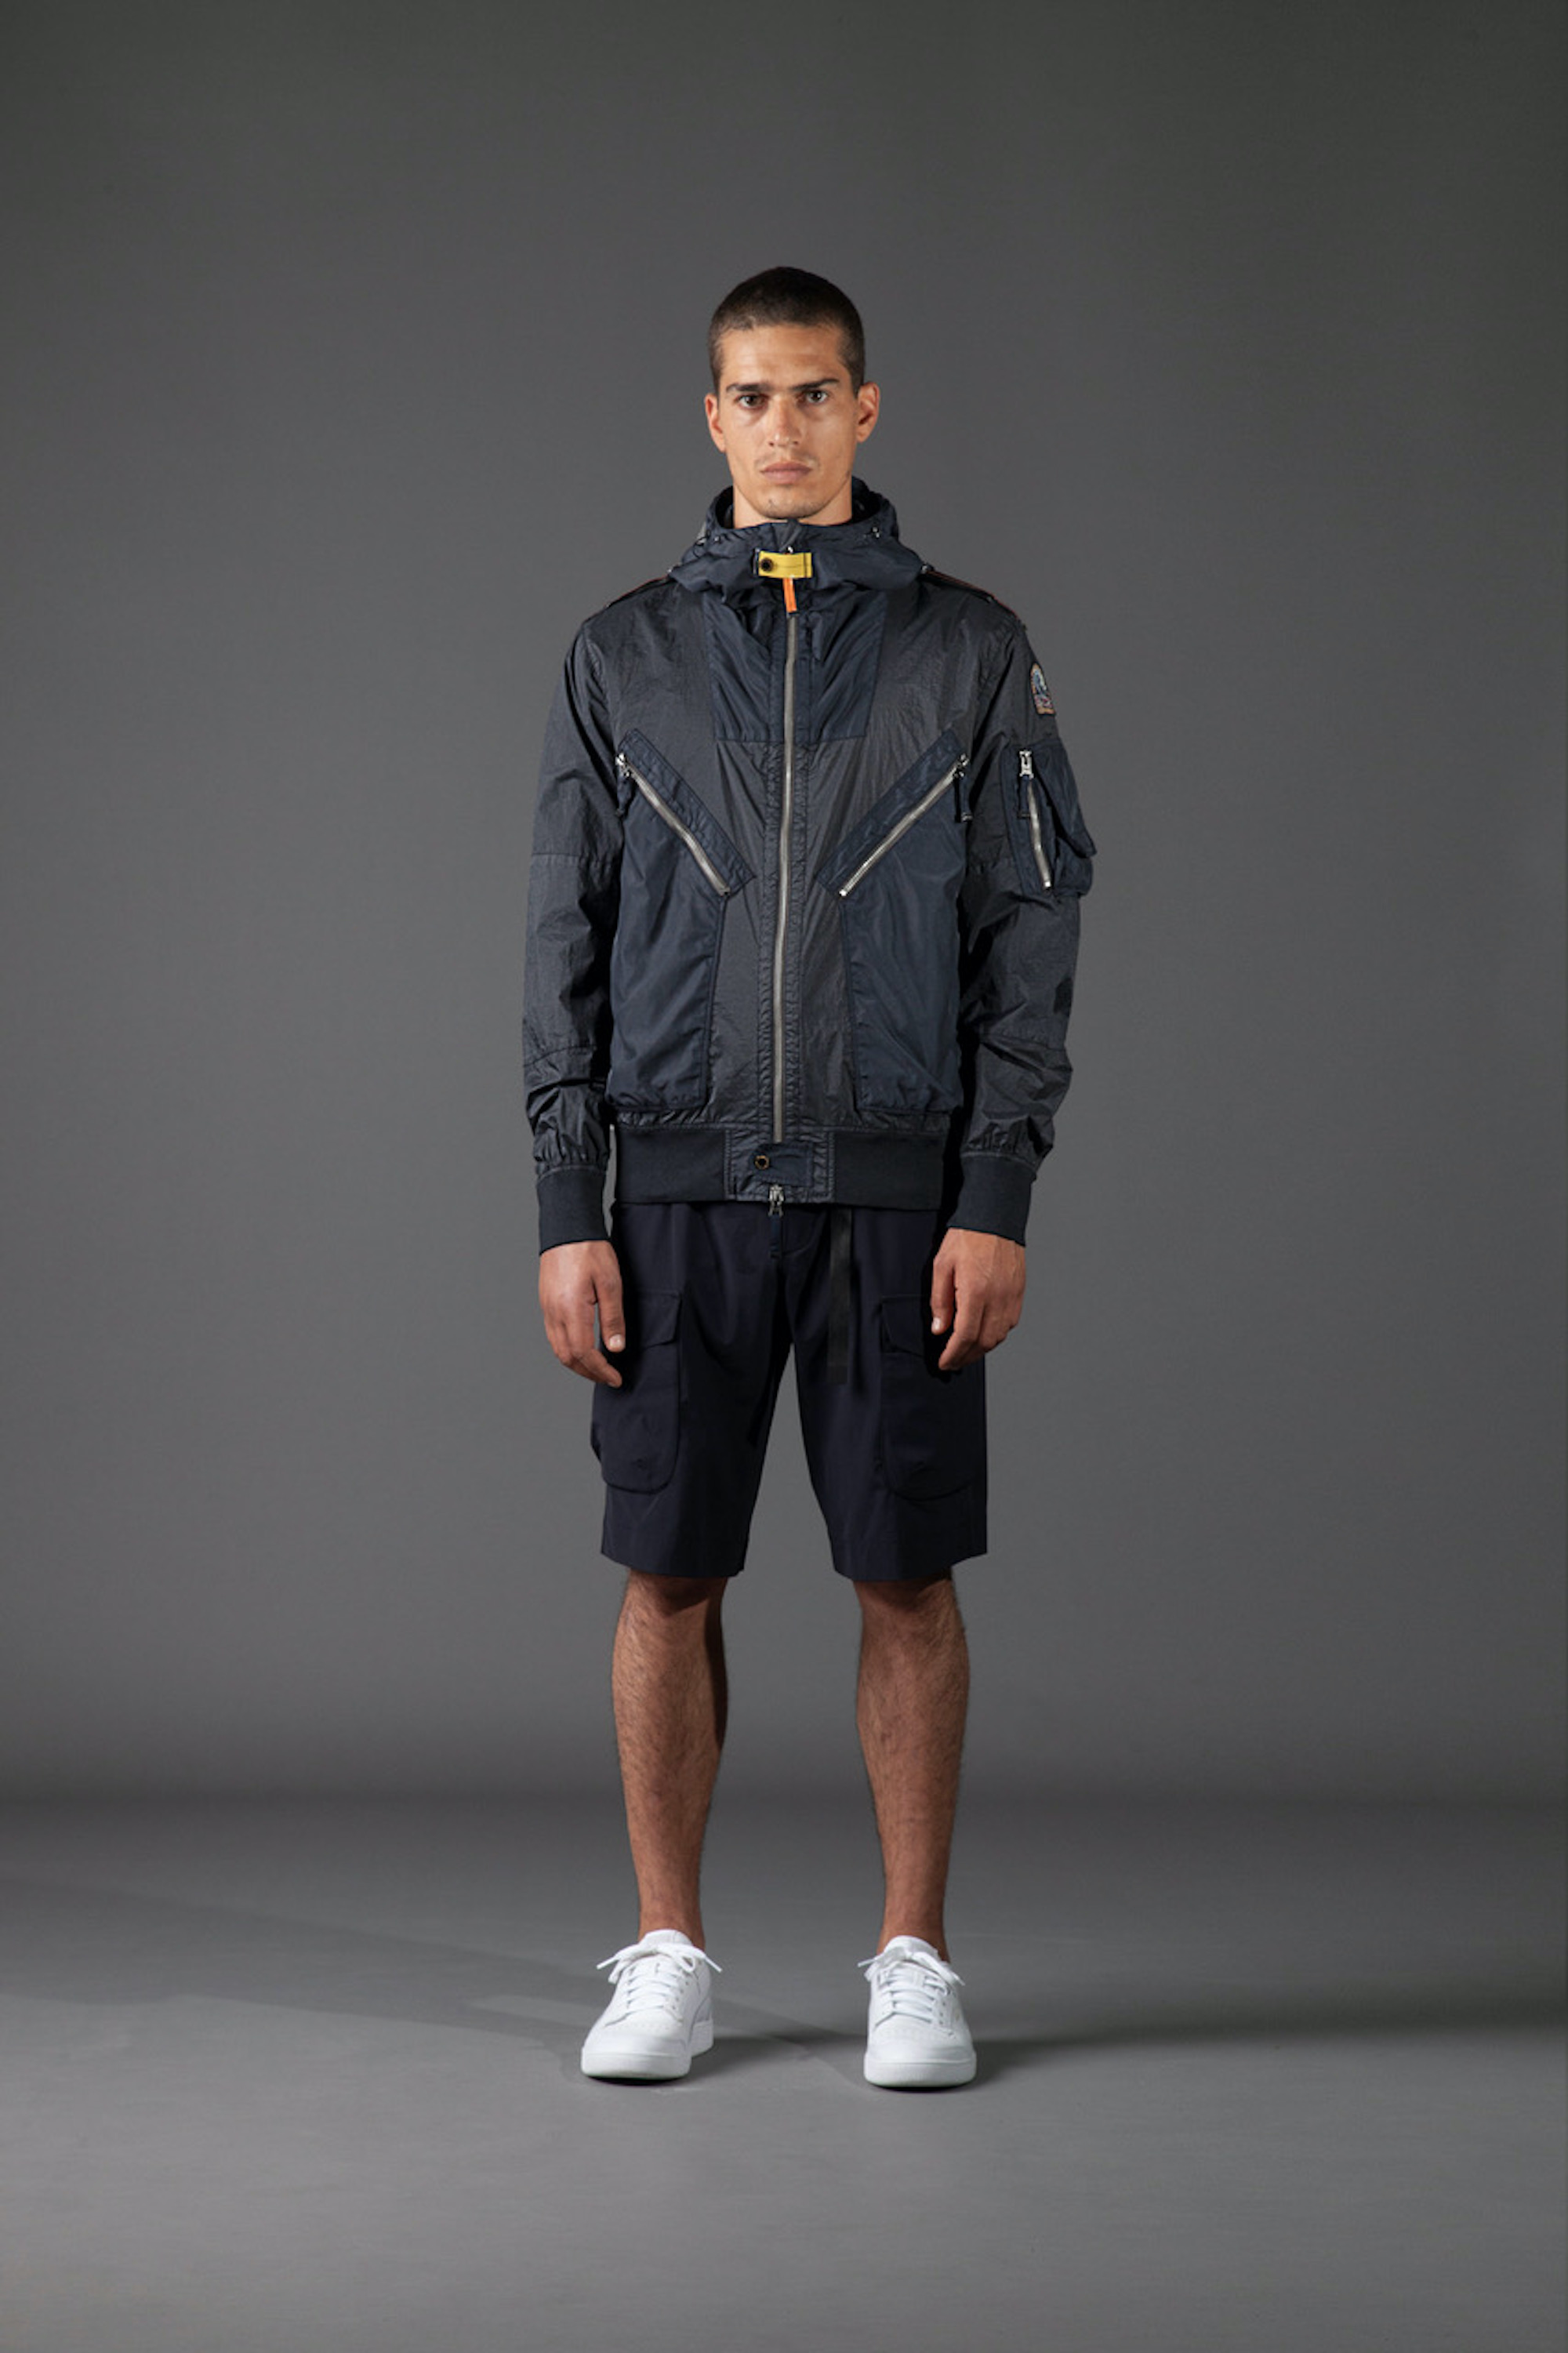 Parajumpers SS21 blue two toned jackets and black shorts